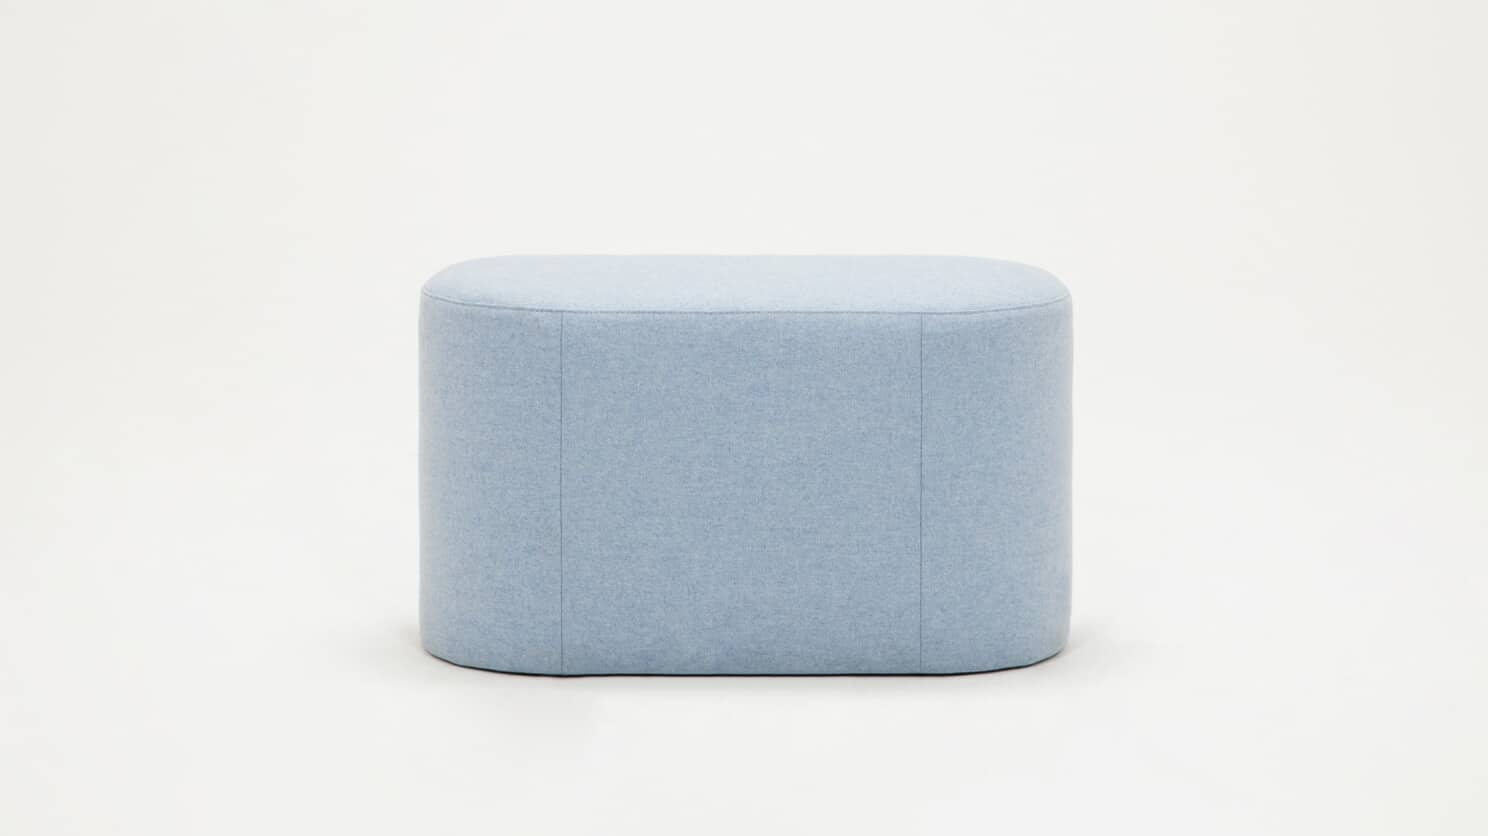 30144 04 03 ottoman oval lana light blue front view